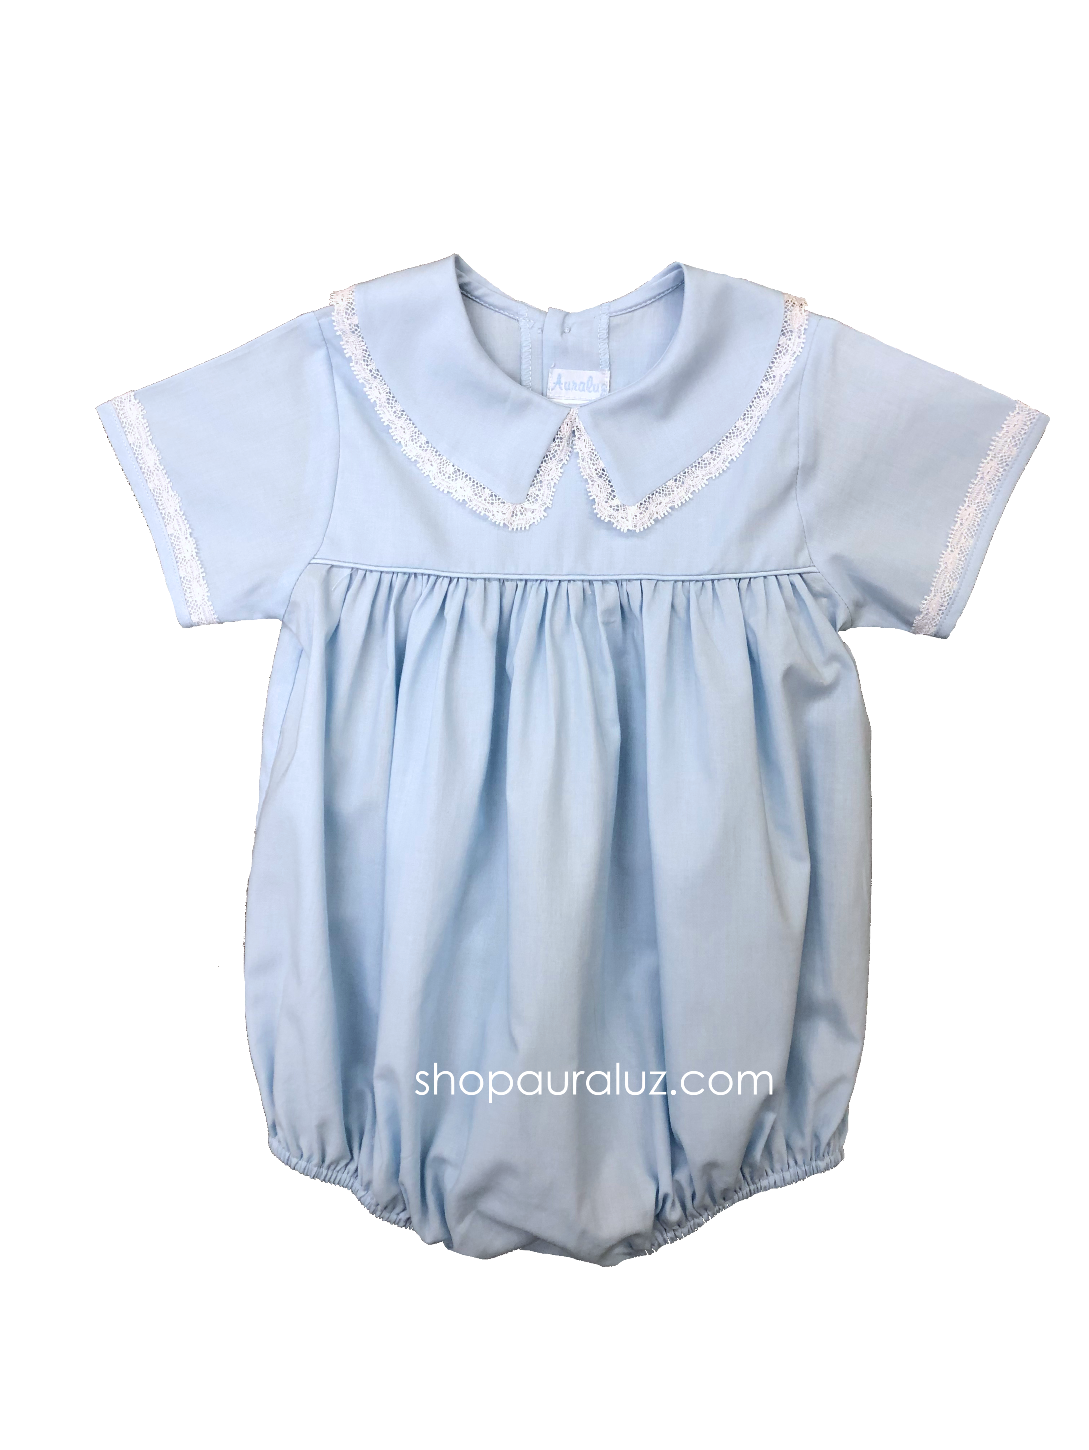 Auraluz Boy Bubble..Blue with white lace and boy collar